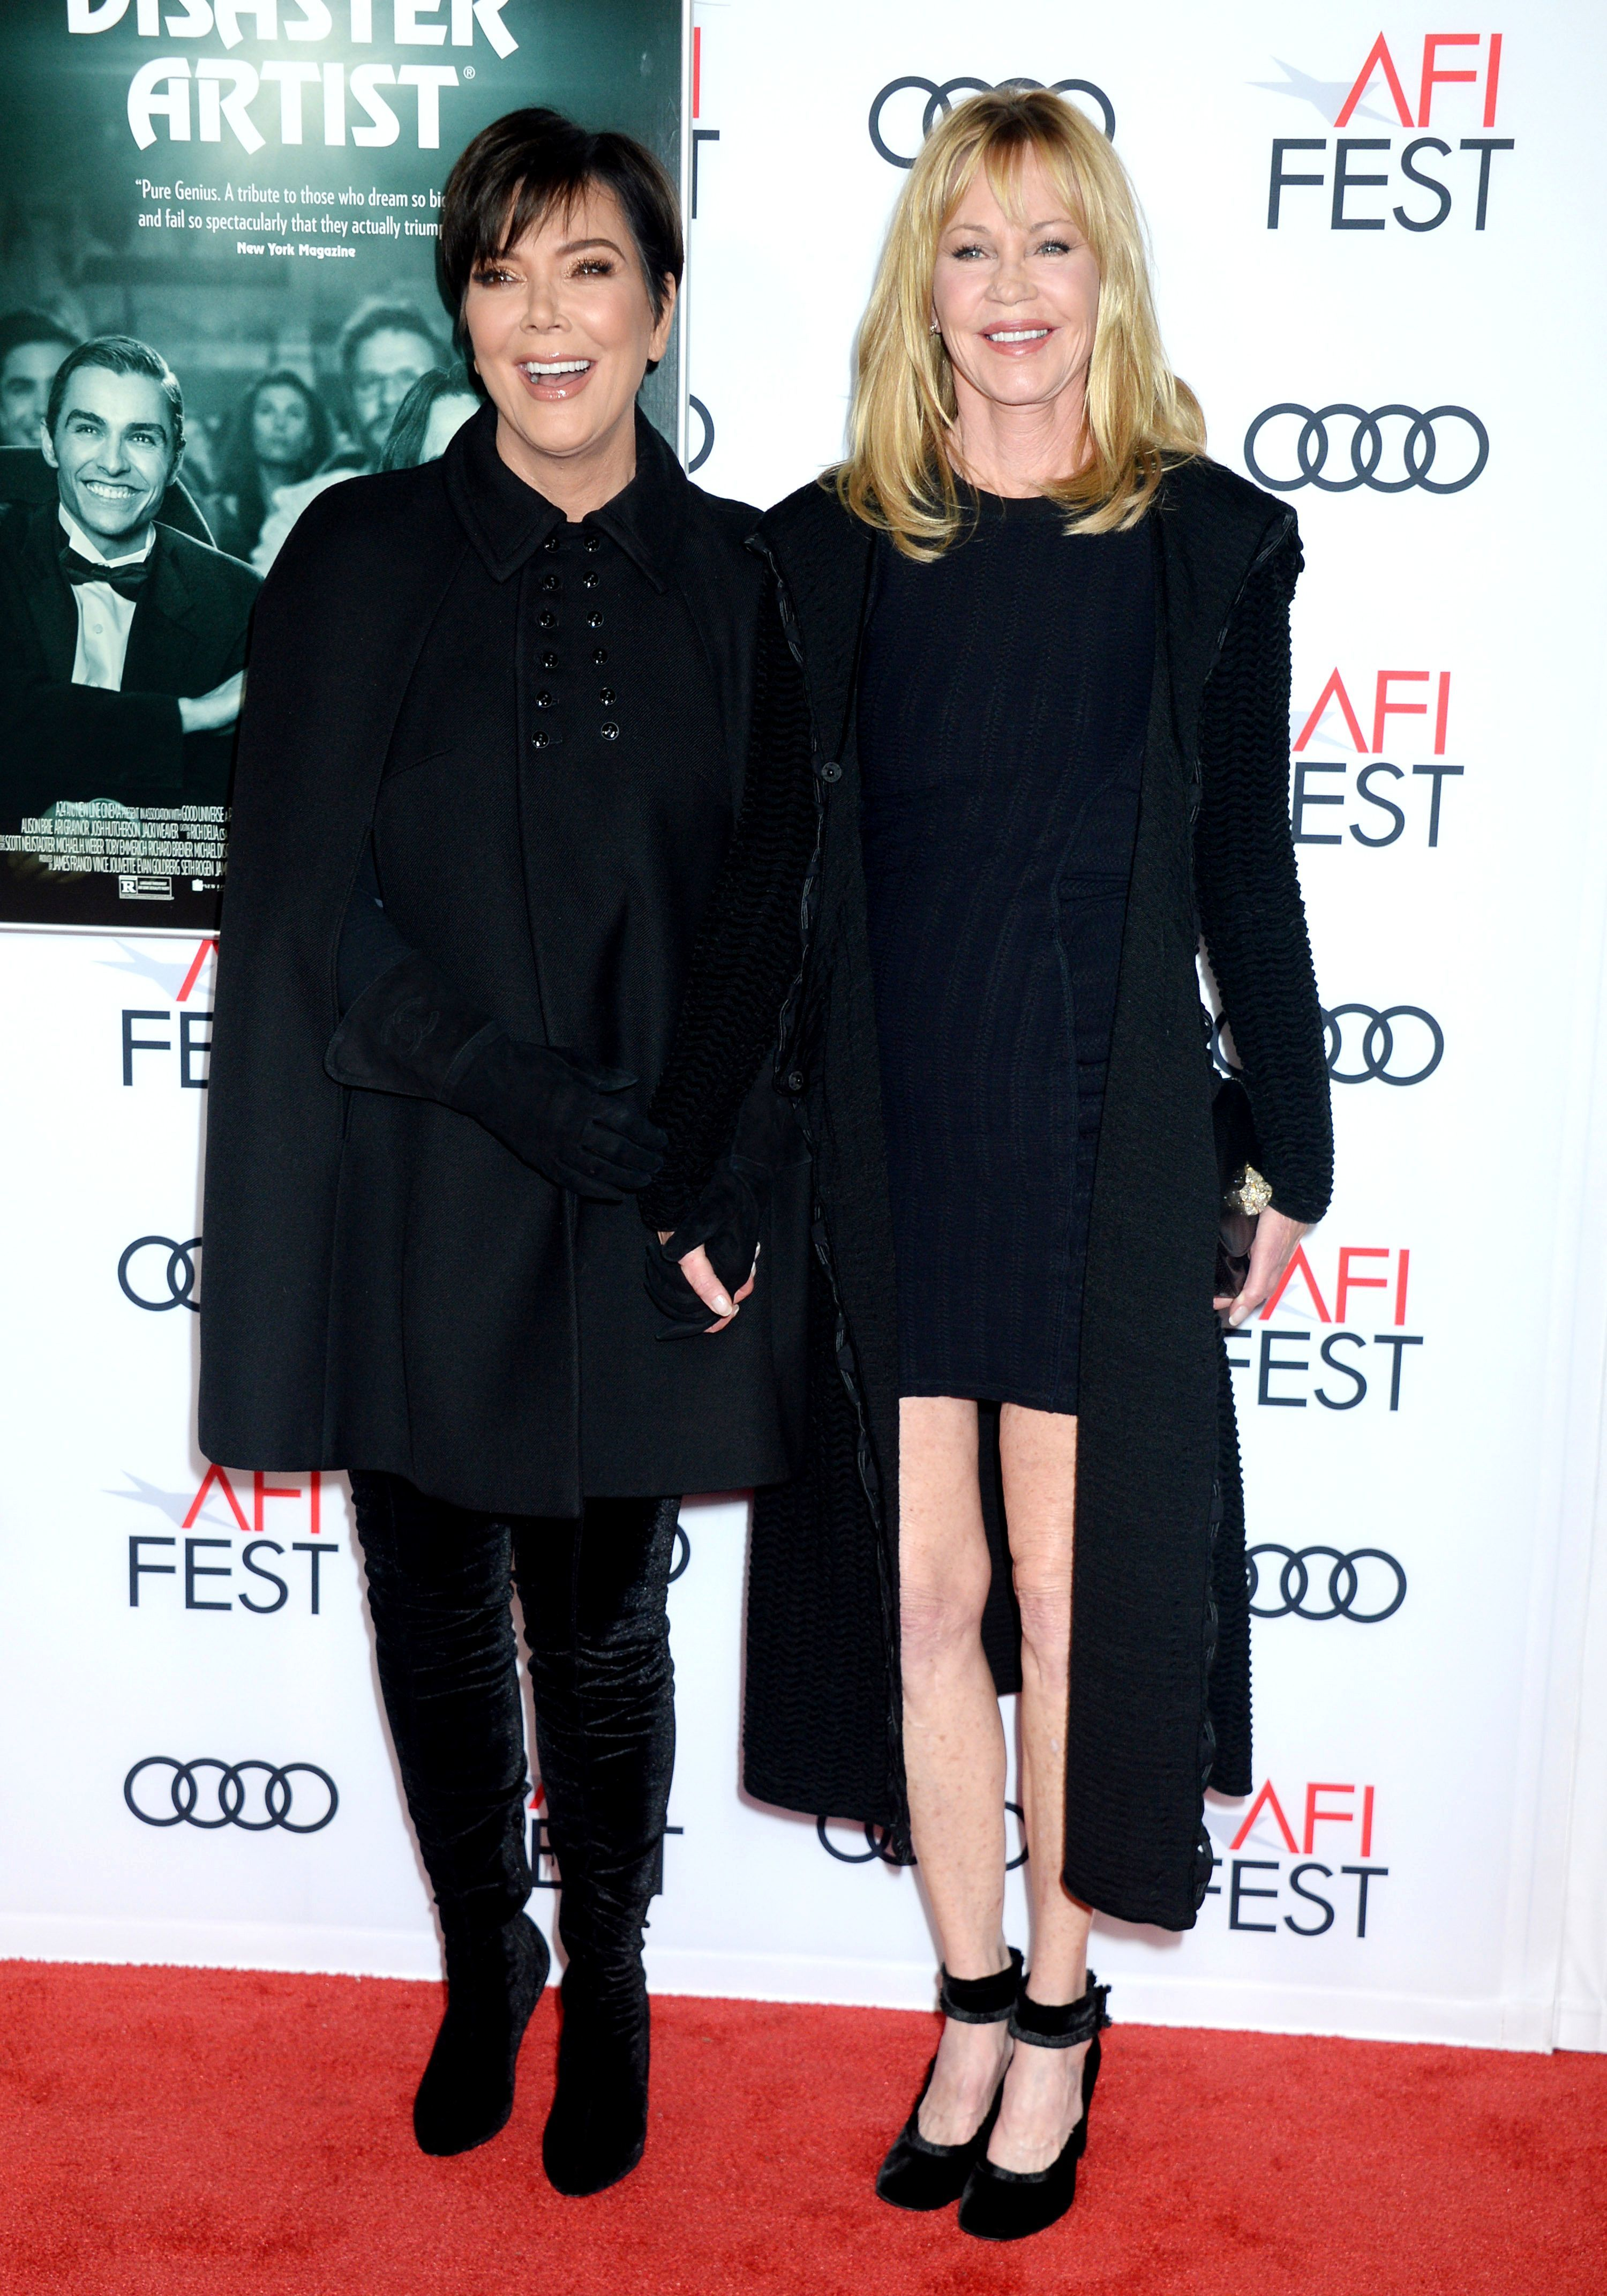 """Kris Jenner and Melanie Griffith attend """"The Disaster Artist"""" Centerpiece Gala at the AFI Fest in Los Angeles on Nov. 12, 2017.  AFI FEST 2017   THE DISASTER ARTIST Centerpiece Gala"""